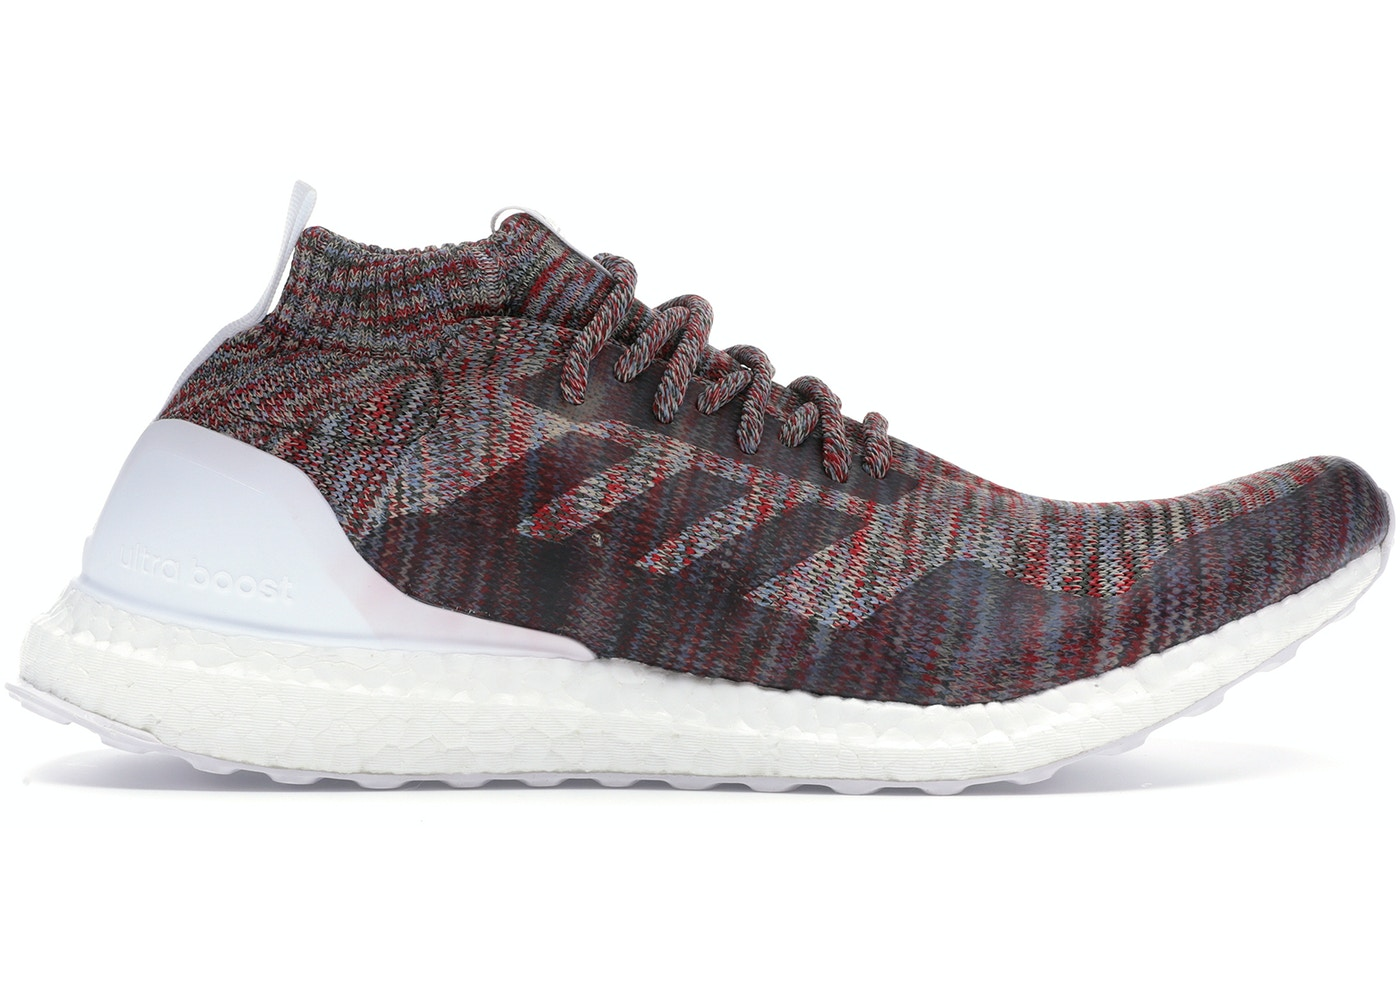 7c4488398eed4 Buy adidas Ultra Boost Shoes   Deadstock Sneakers